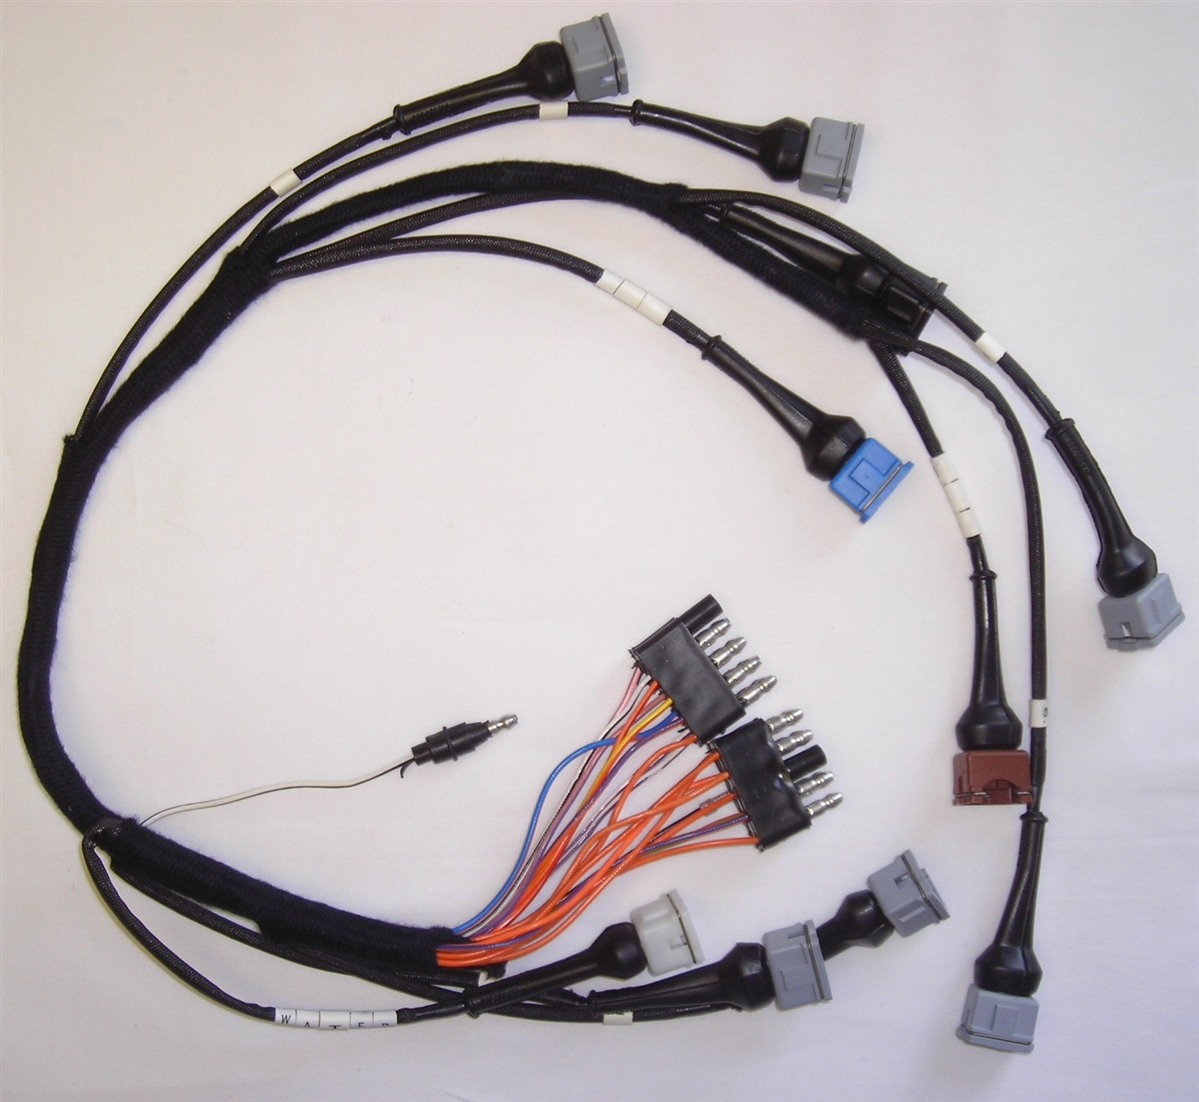 XJ6311 2?1403006000 jaguar series 3 xj6 fuel injection harness jaguar wiring harness at readyjetset.co